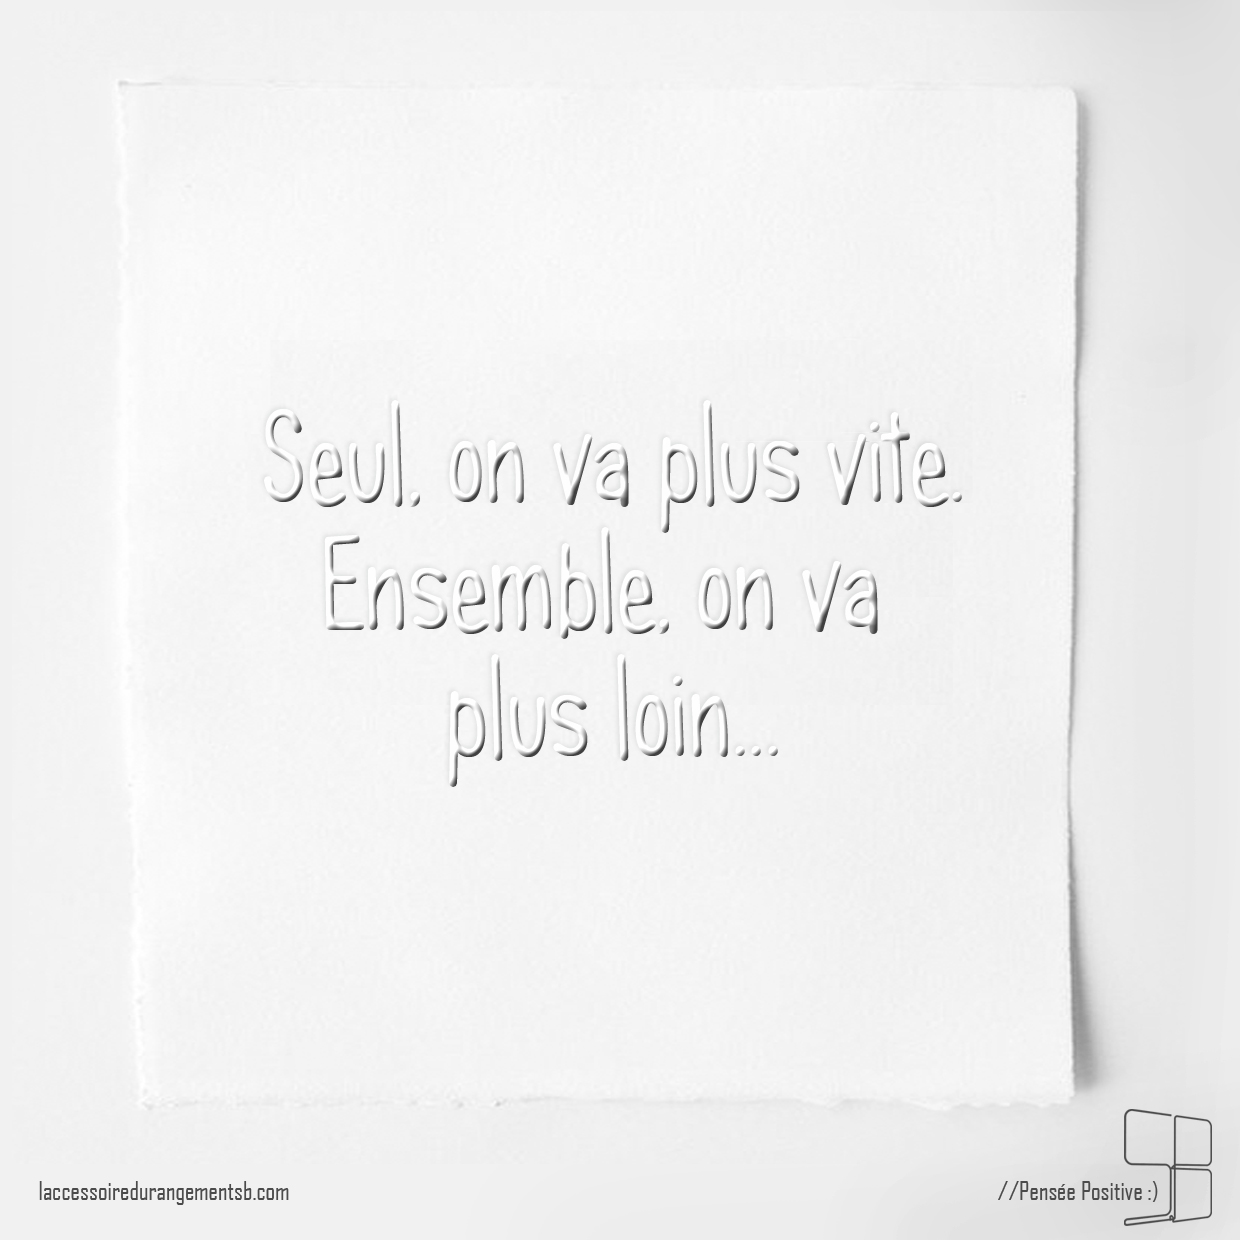 citation_seul-on-va-plus-vite